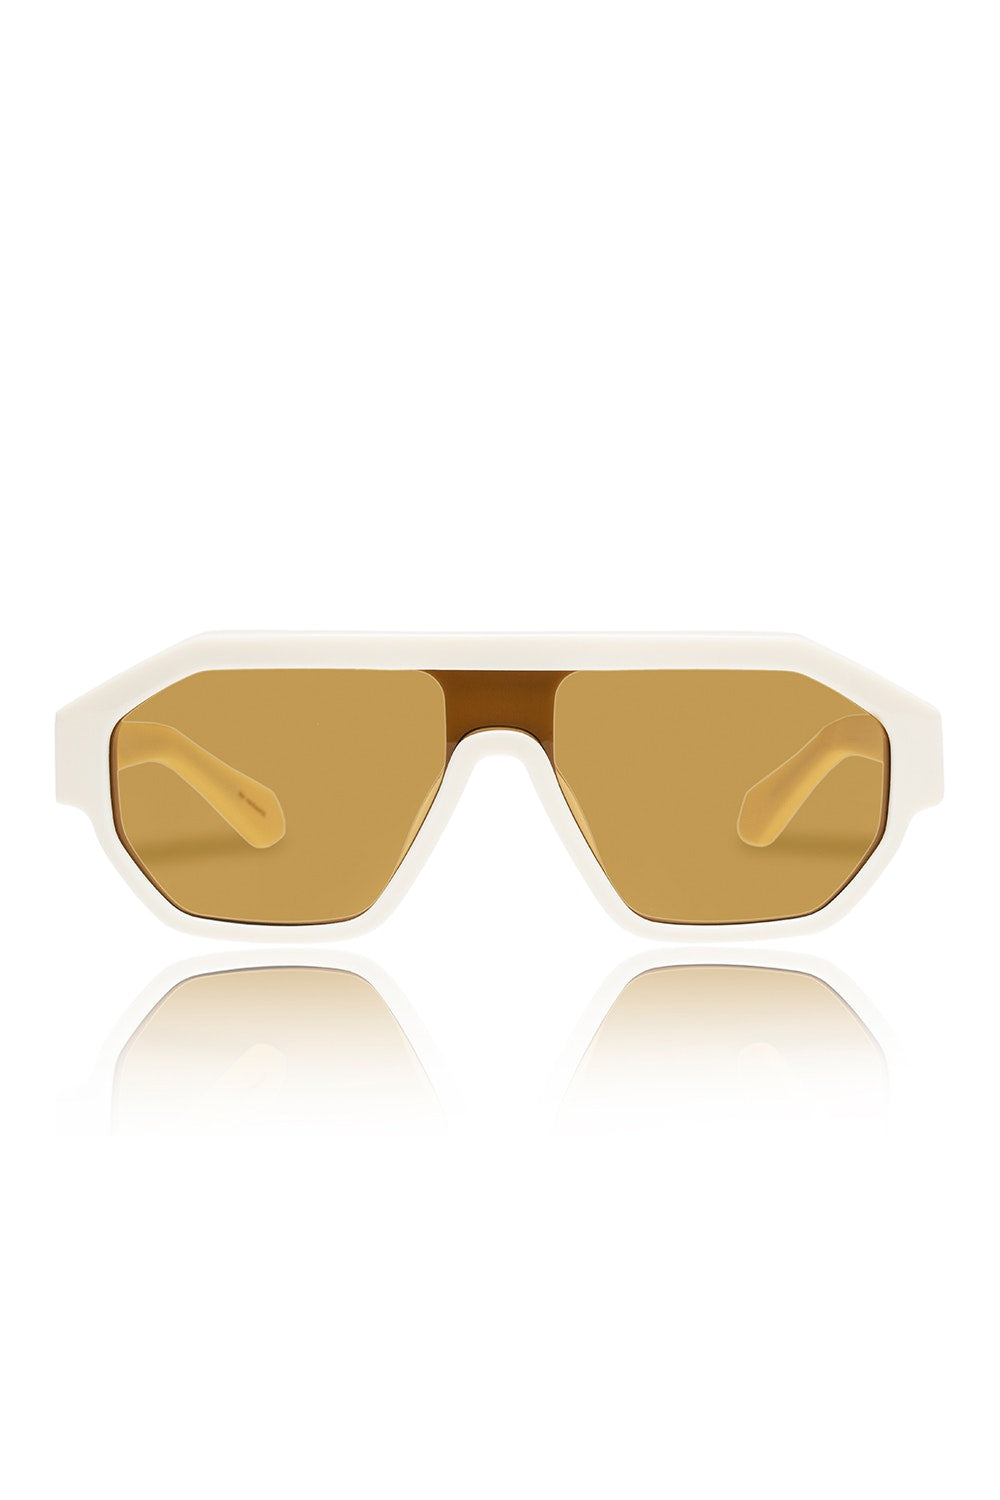 Karen Walker Tribon // Ivory